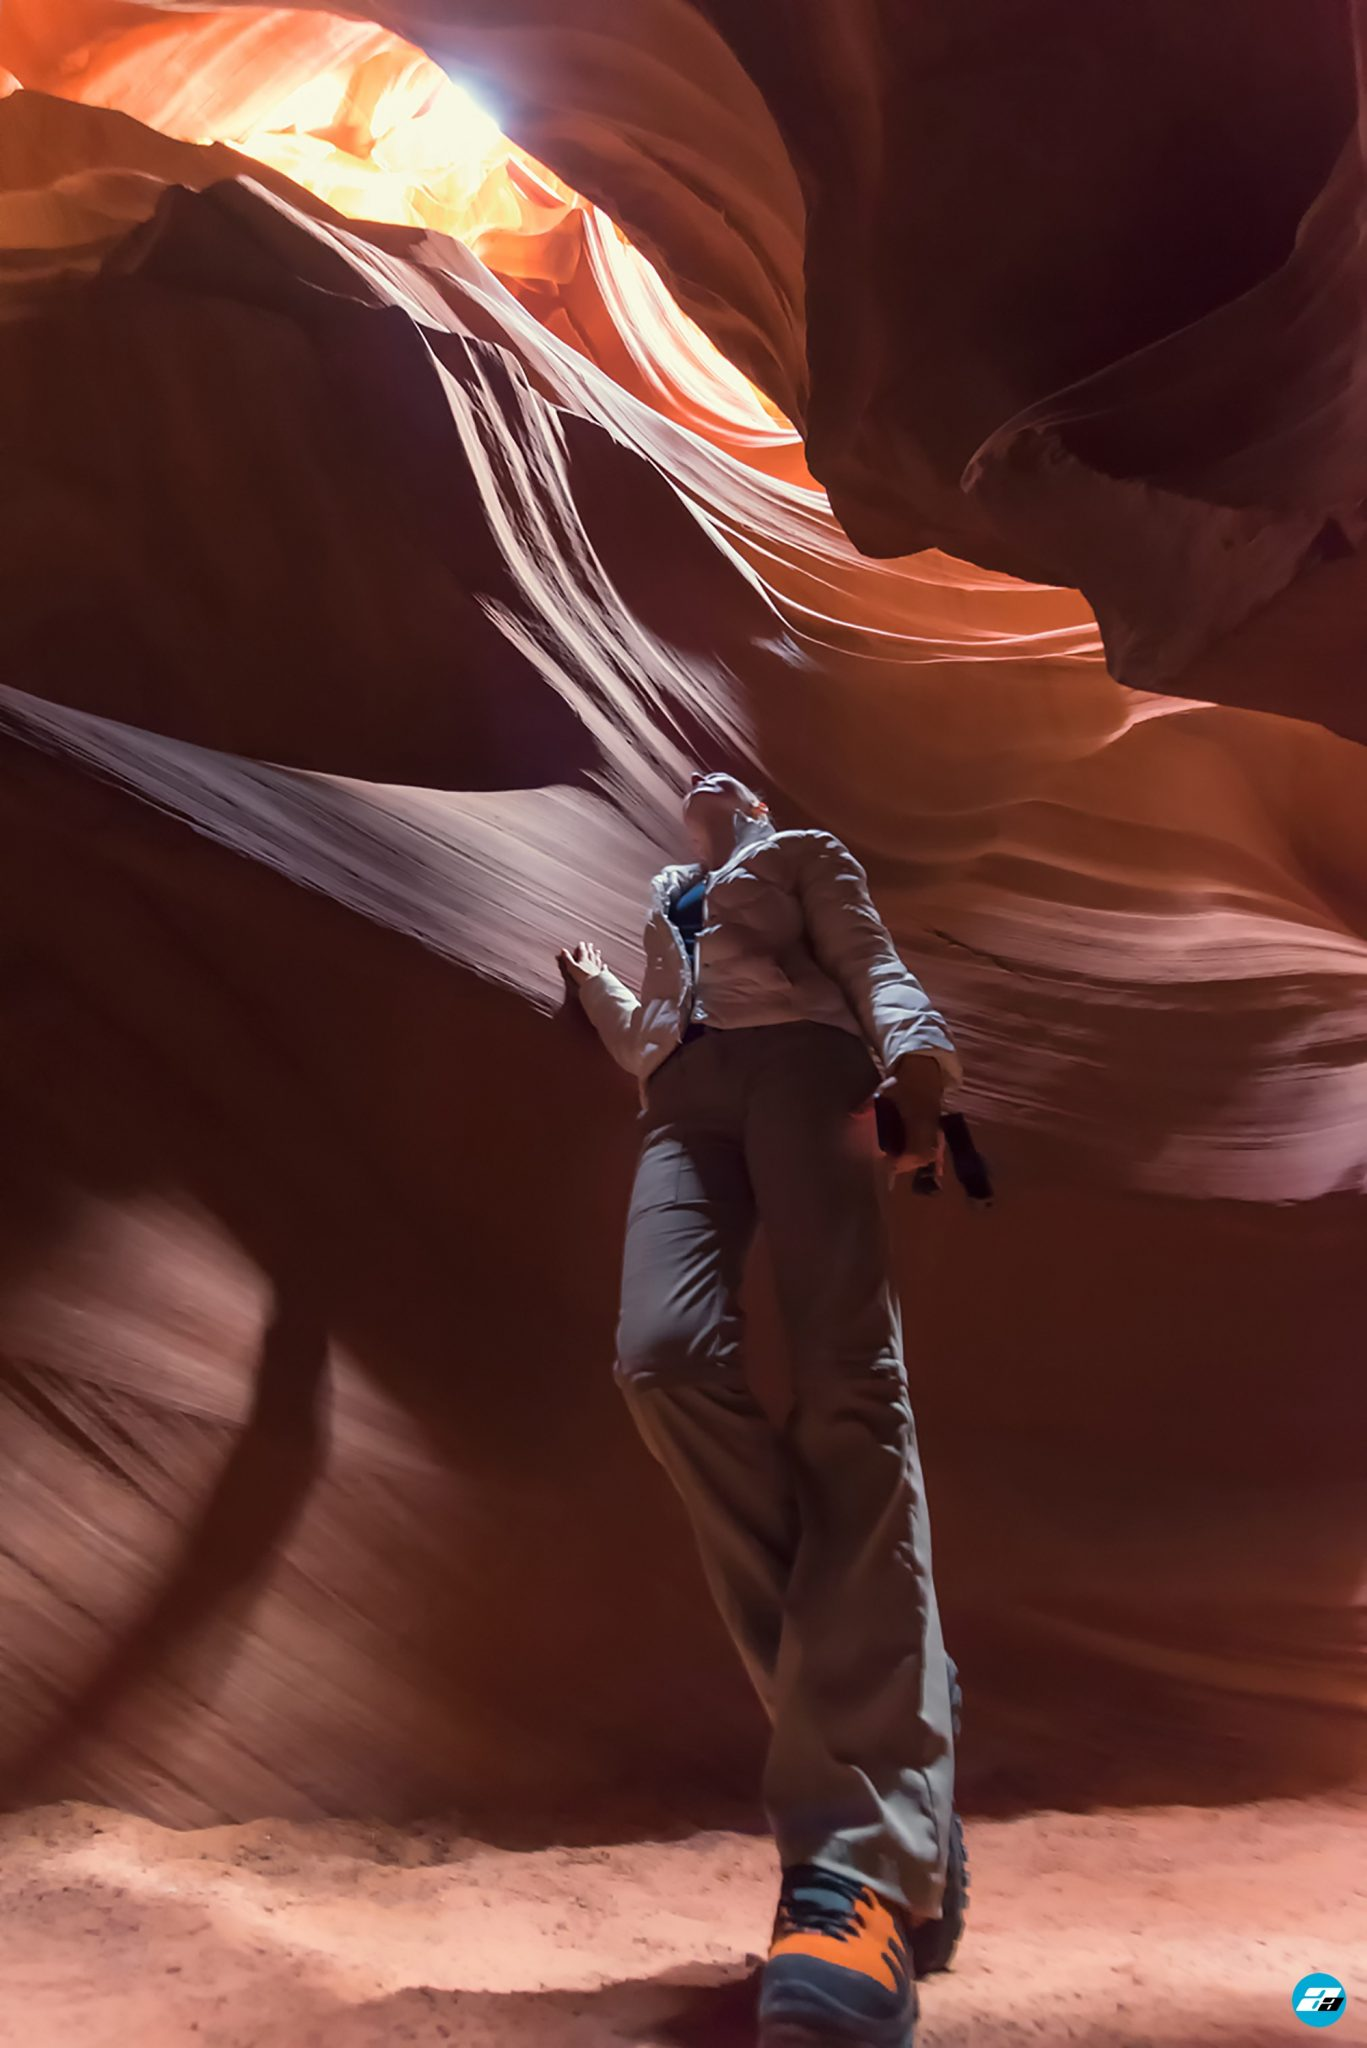 Antelope Canyon, Arizona, USA. Canyon view from the bottom. Amazing View. Antelope Canyon sunlight. Town of Page.